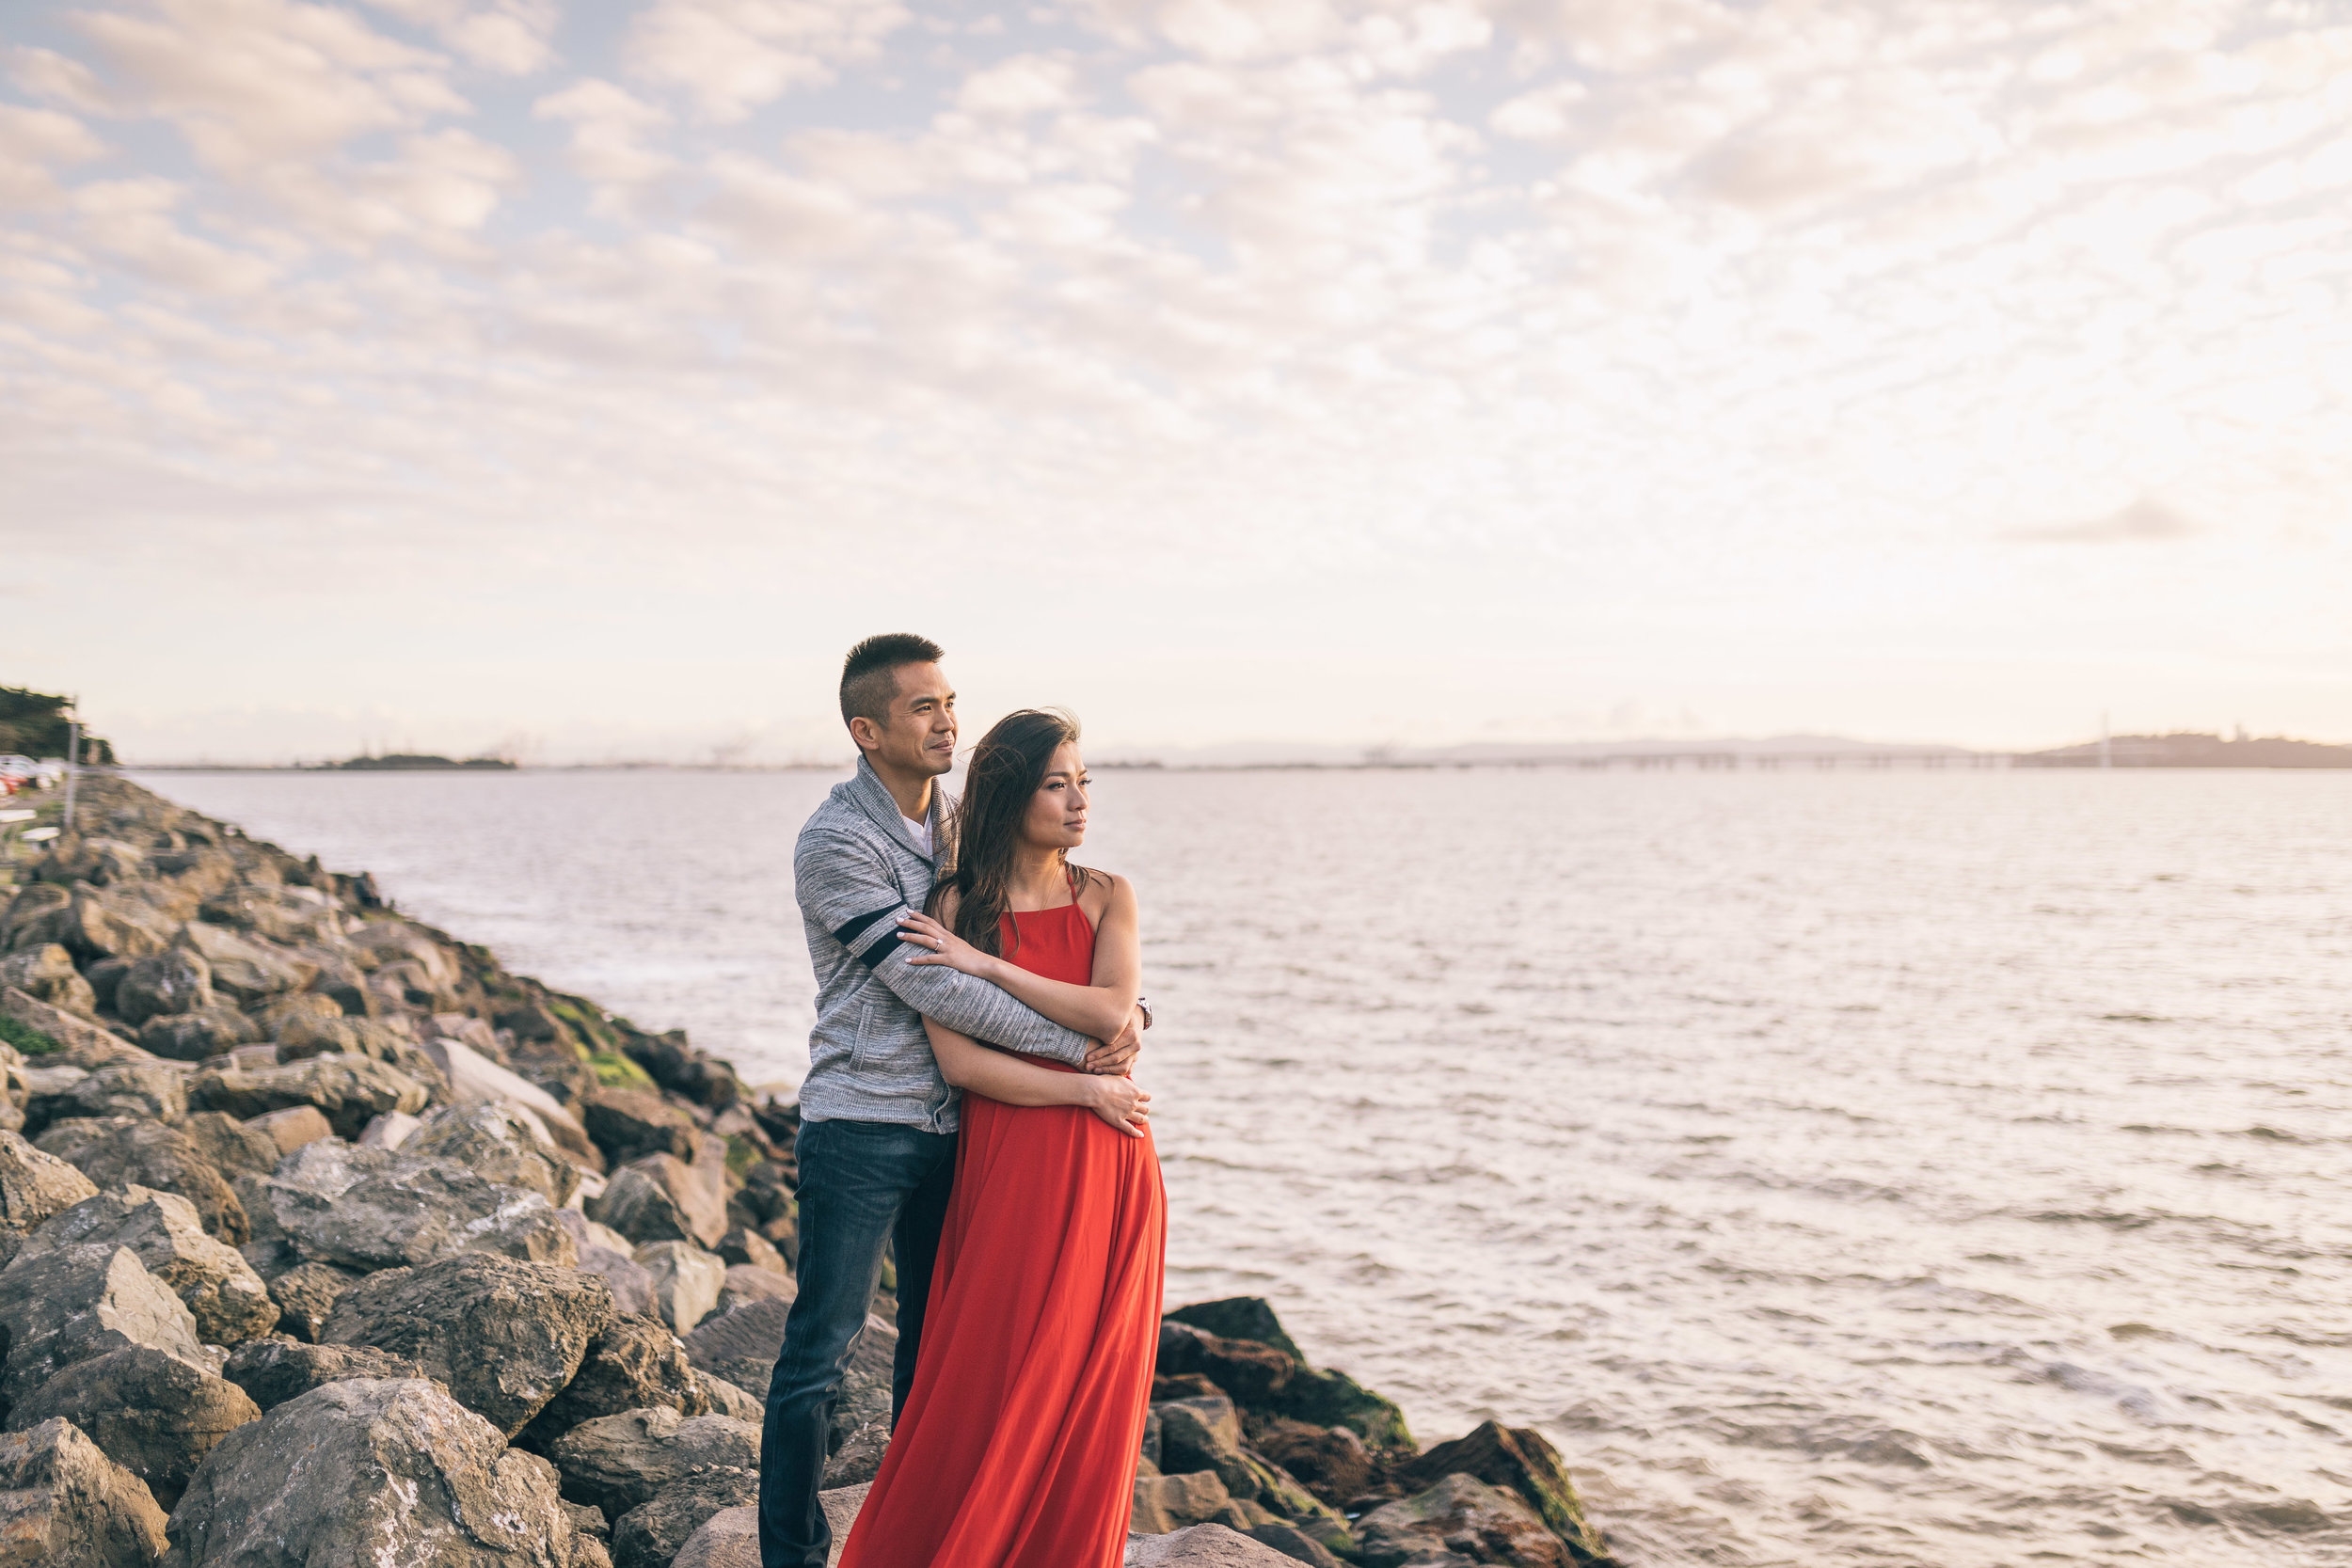 UC Berkeley Botanical Gardens Engagement Session - Emeryville Pier Engagement Photos by JBJ Pictures-Photographer in San Francisco Bay Area (22).jpg